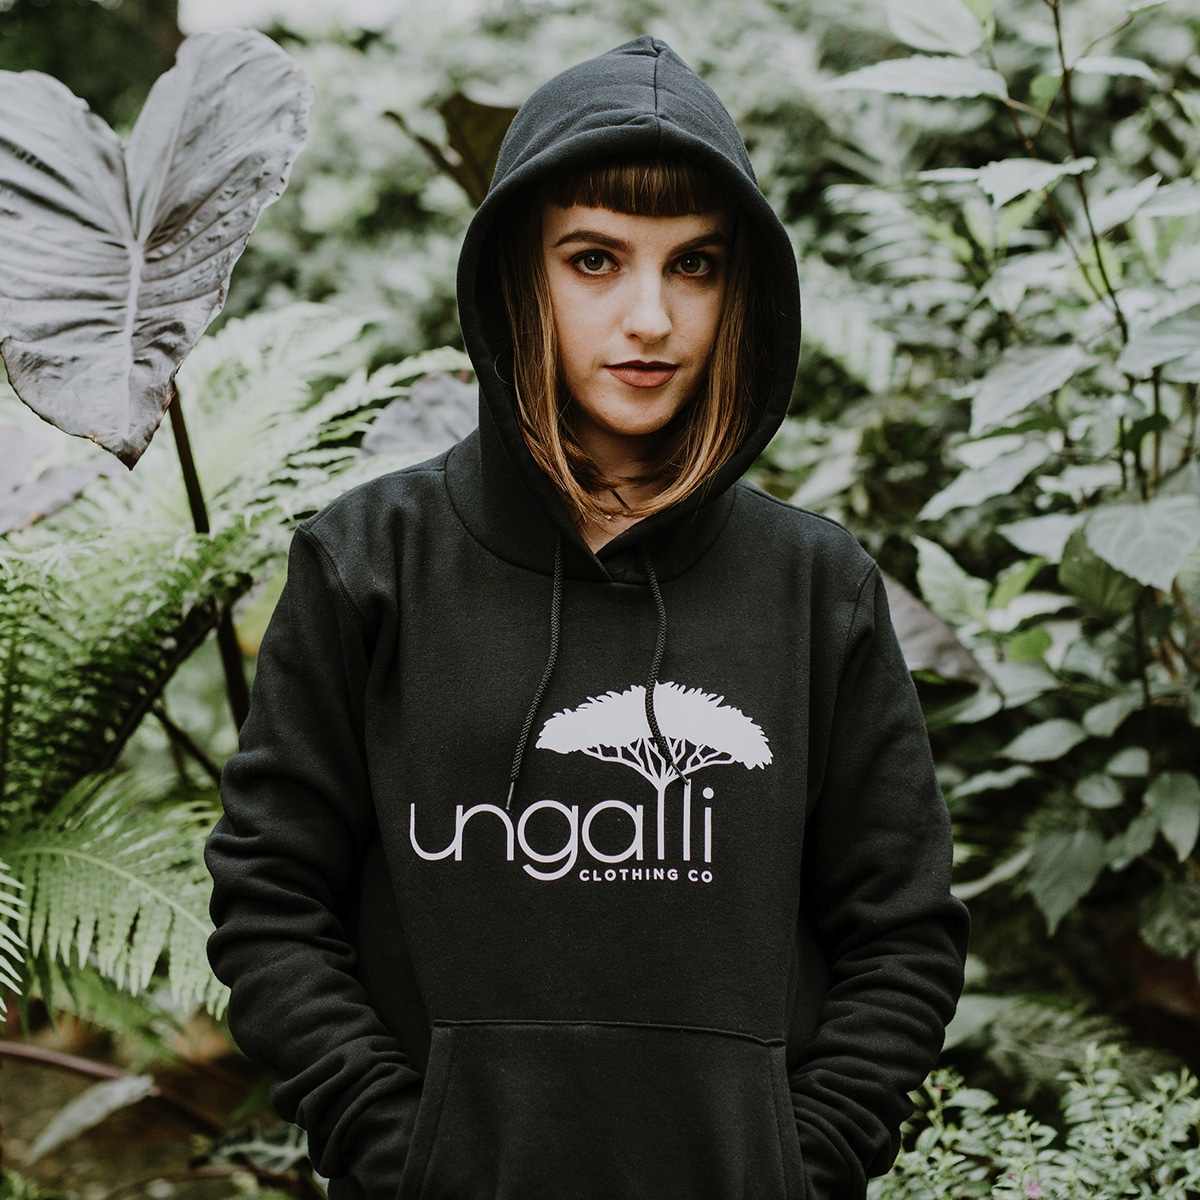 Lost Art - Ungalli Clothing Co